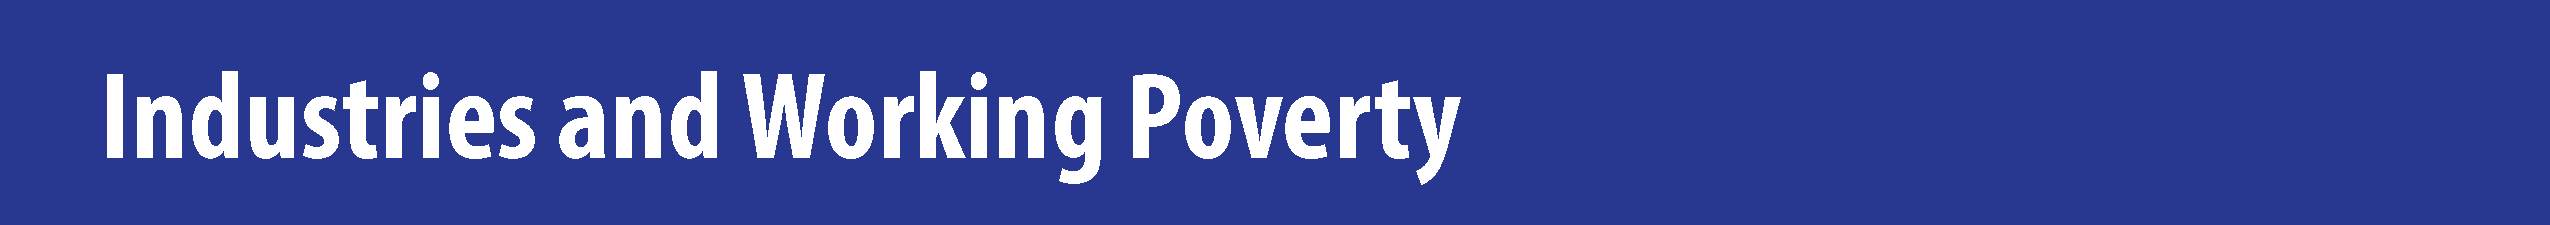 working_poverty_header-07.png